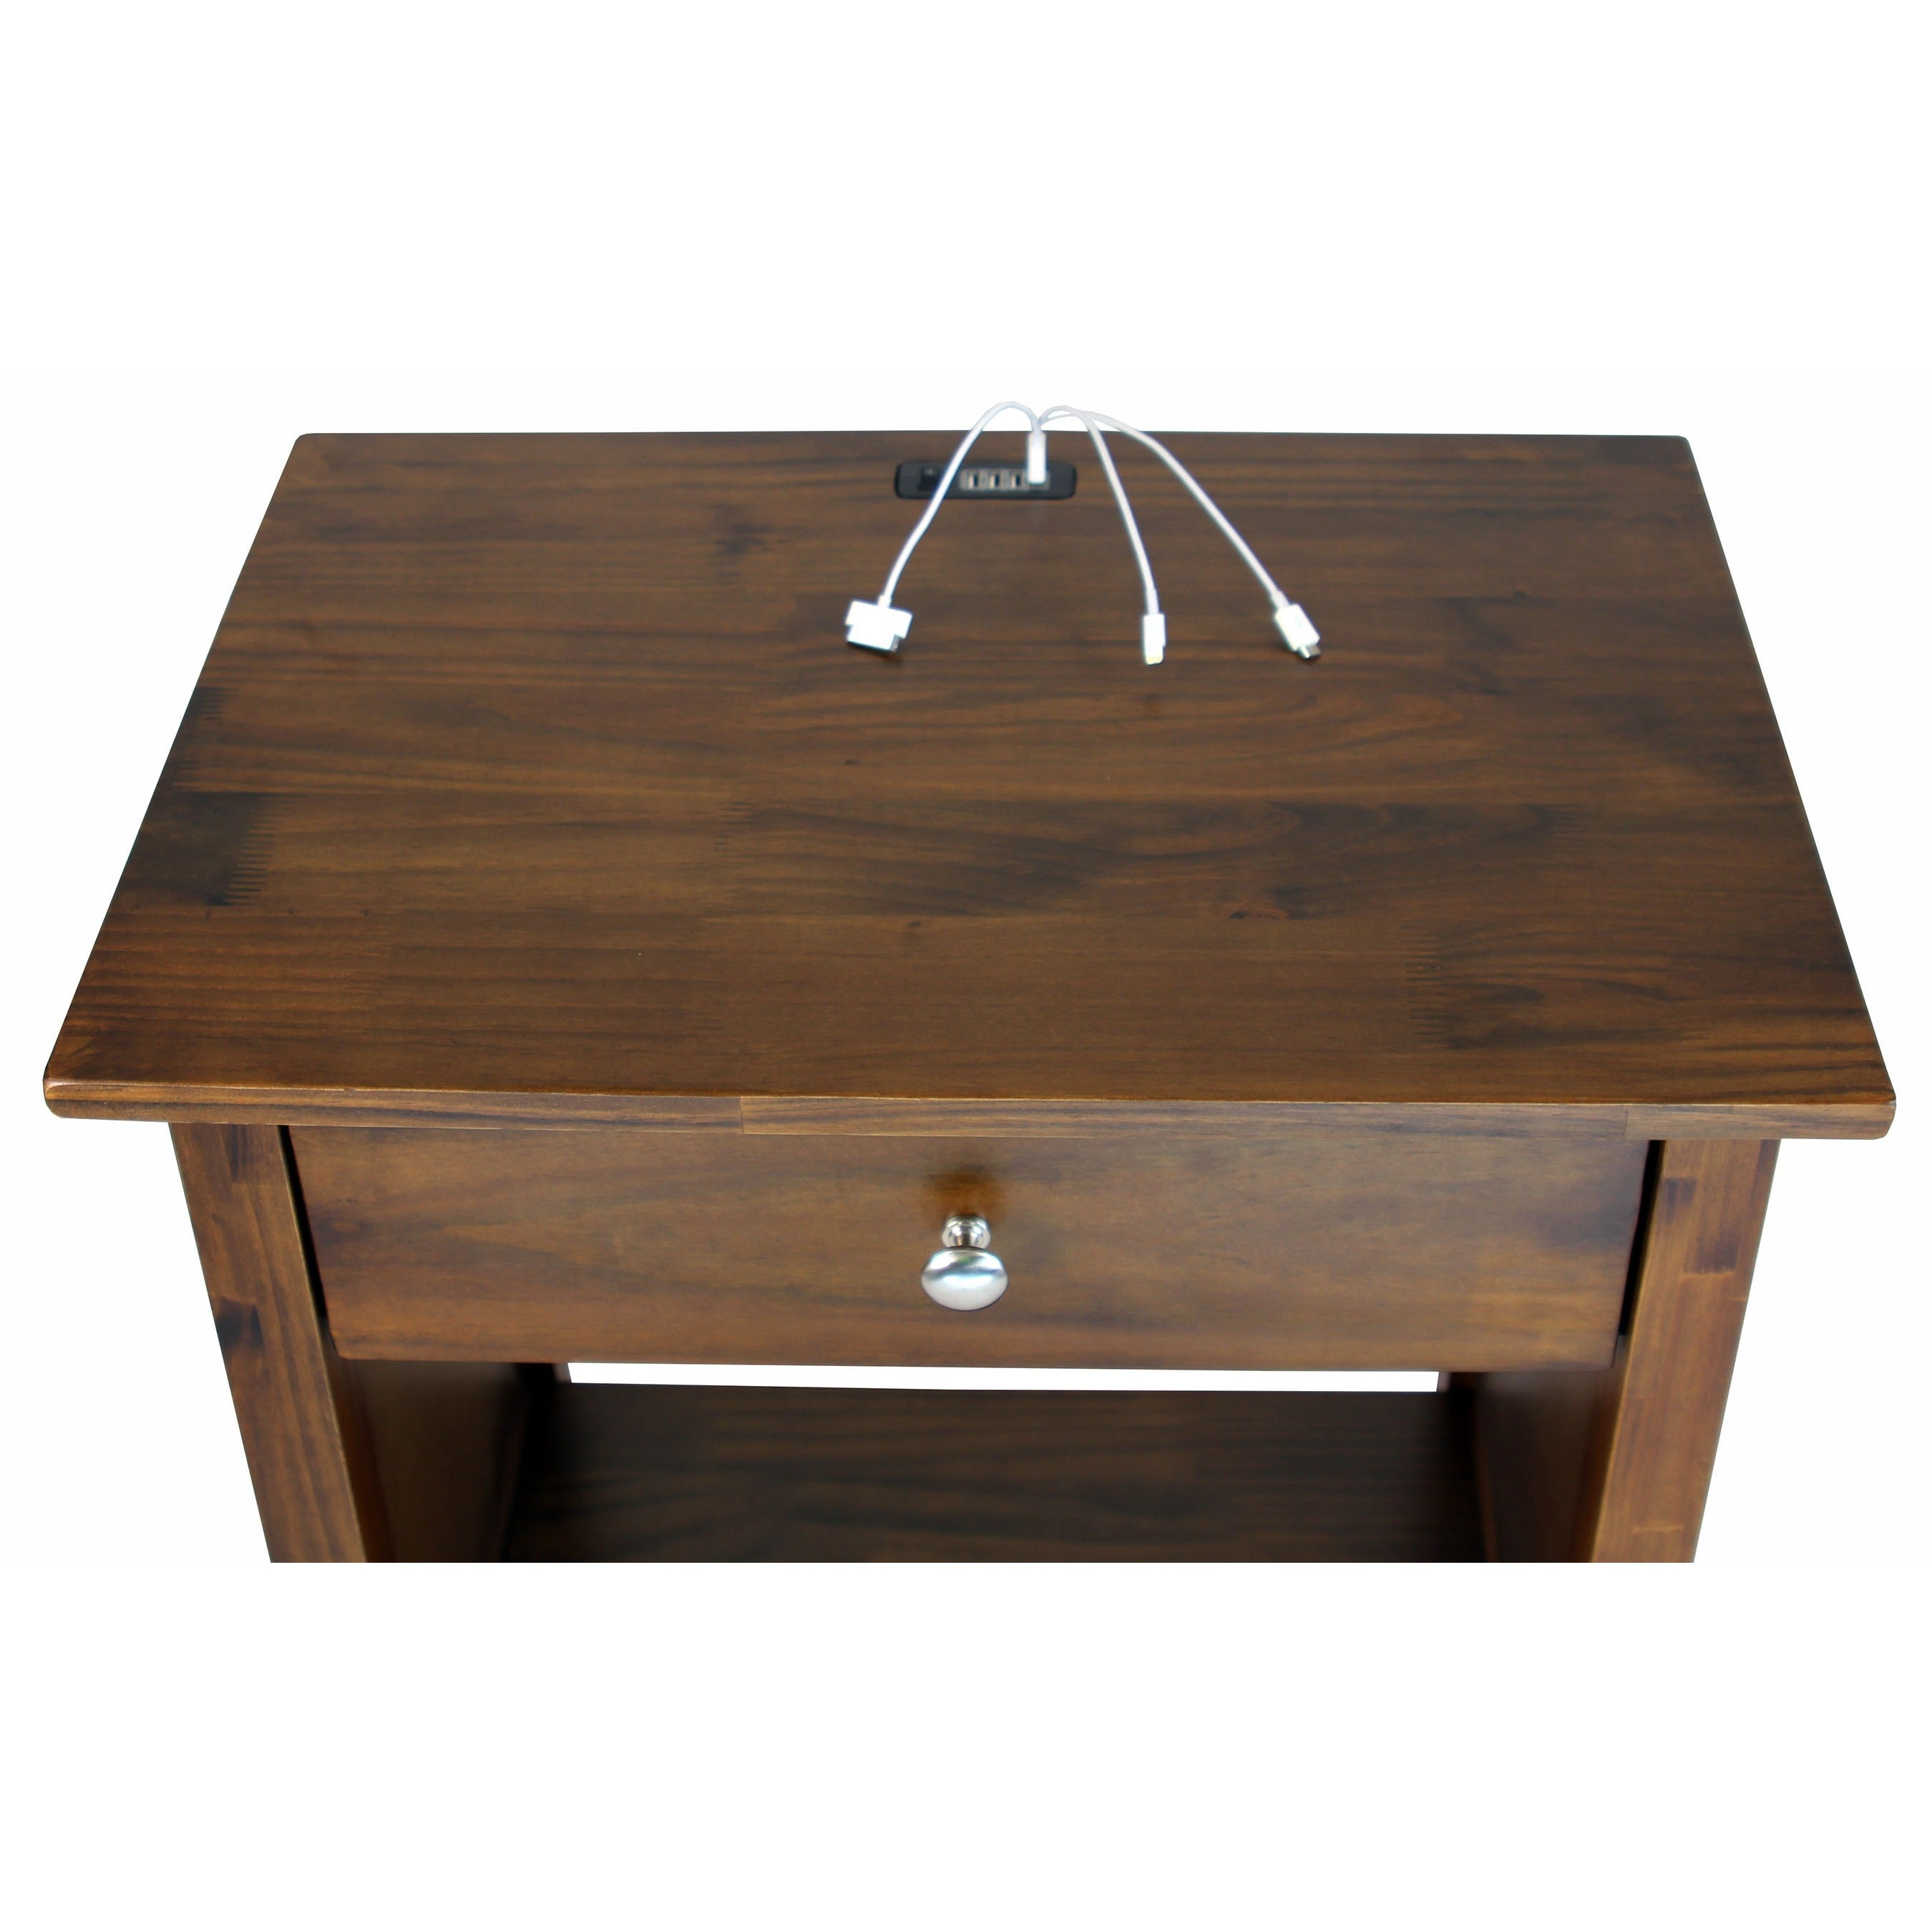 Shop vanderbilt nightstand end table with 4 usb ports free shipping today overstock com 9106467